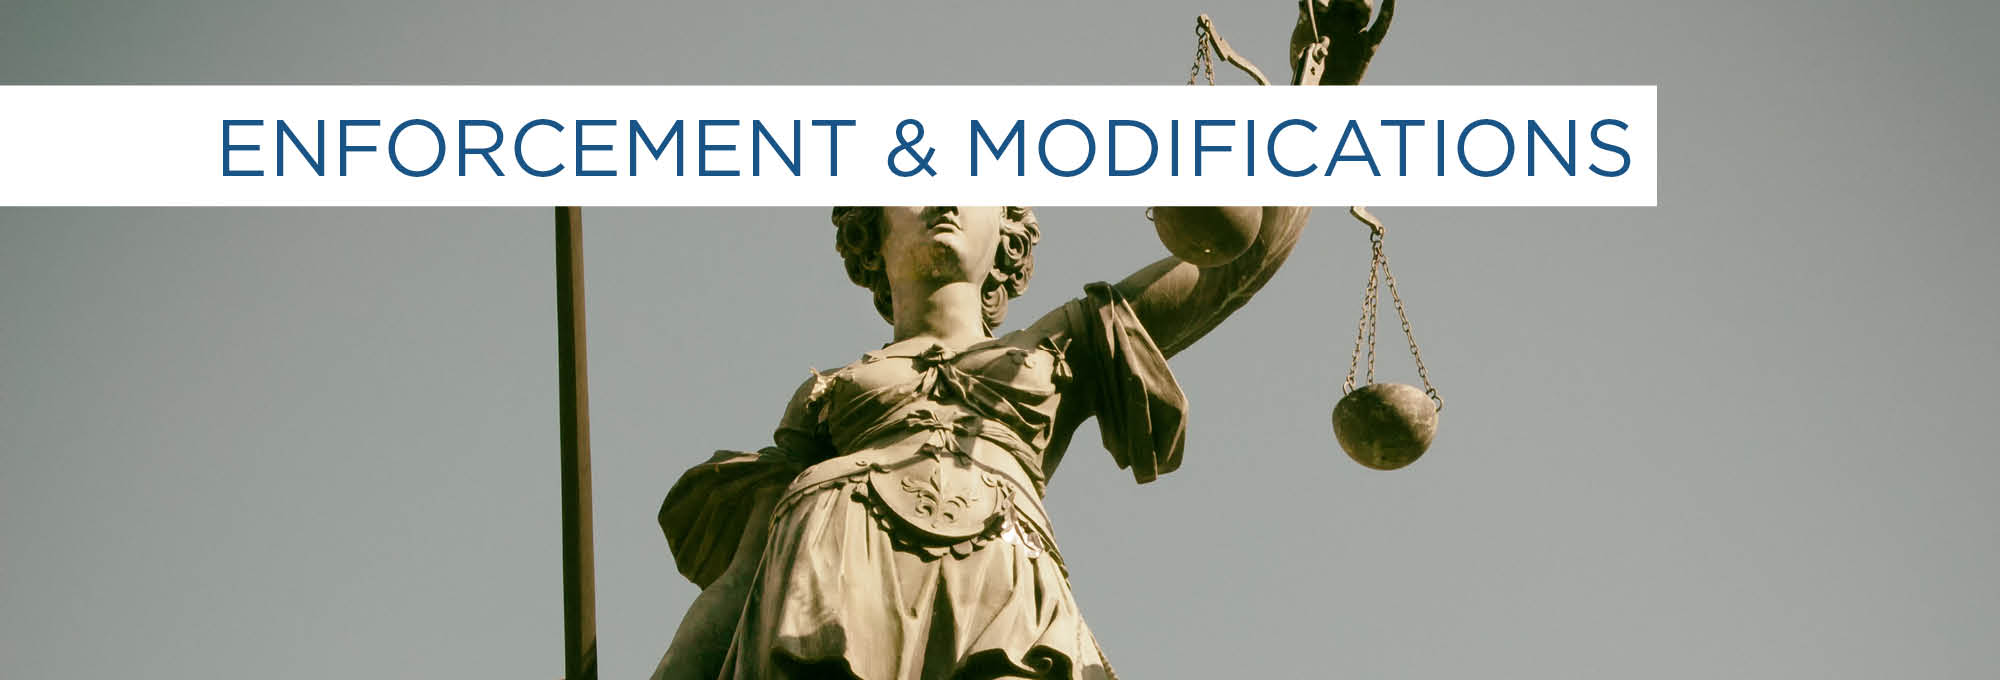 enforcement and modifications Scottsdale Lawyer